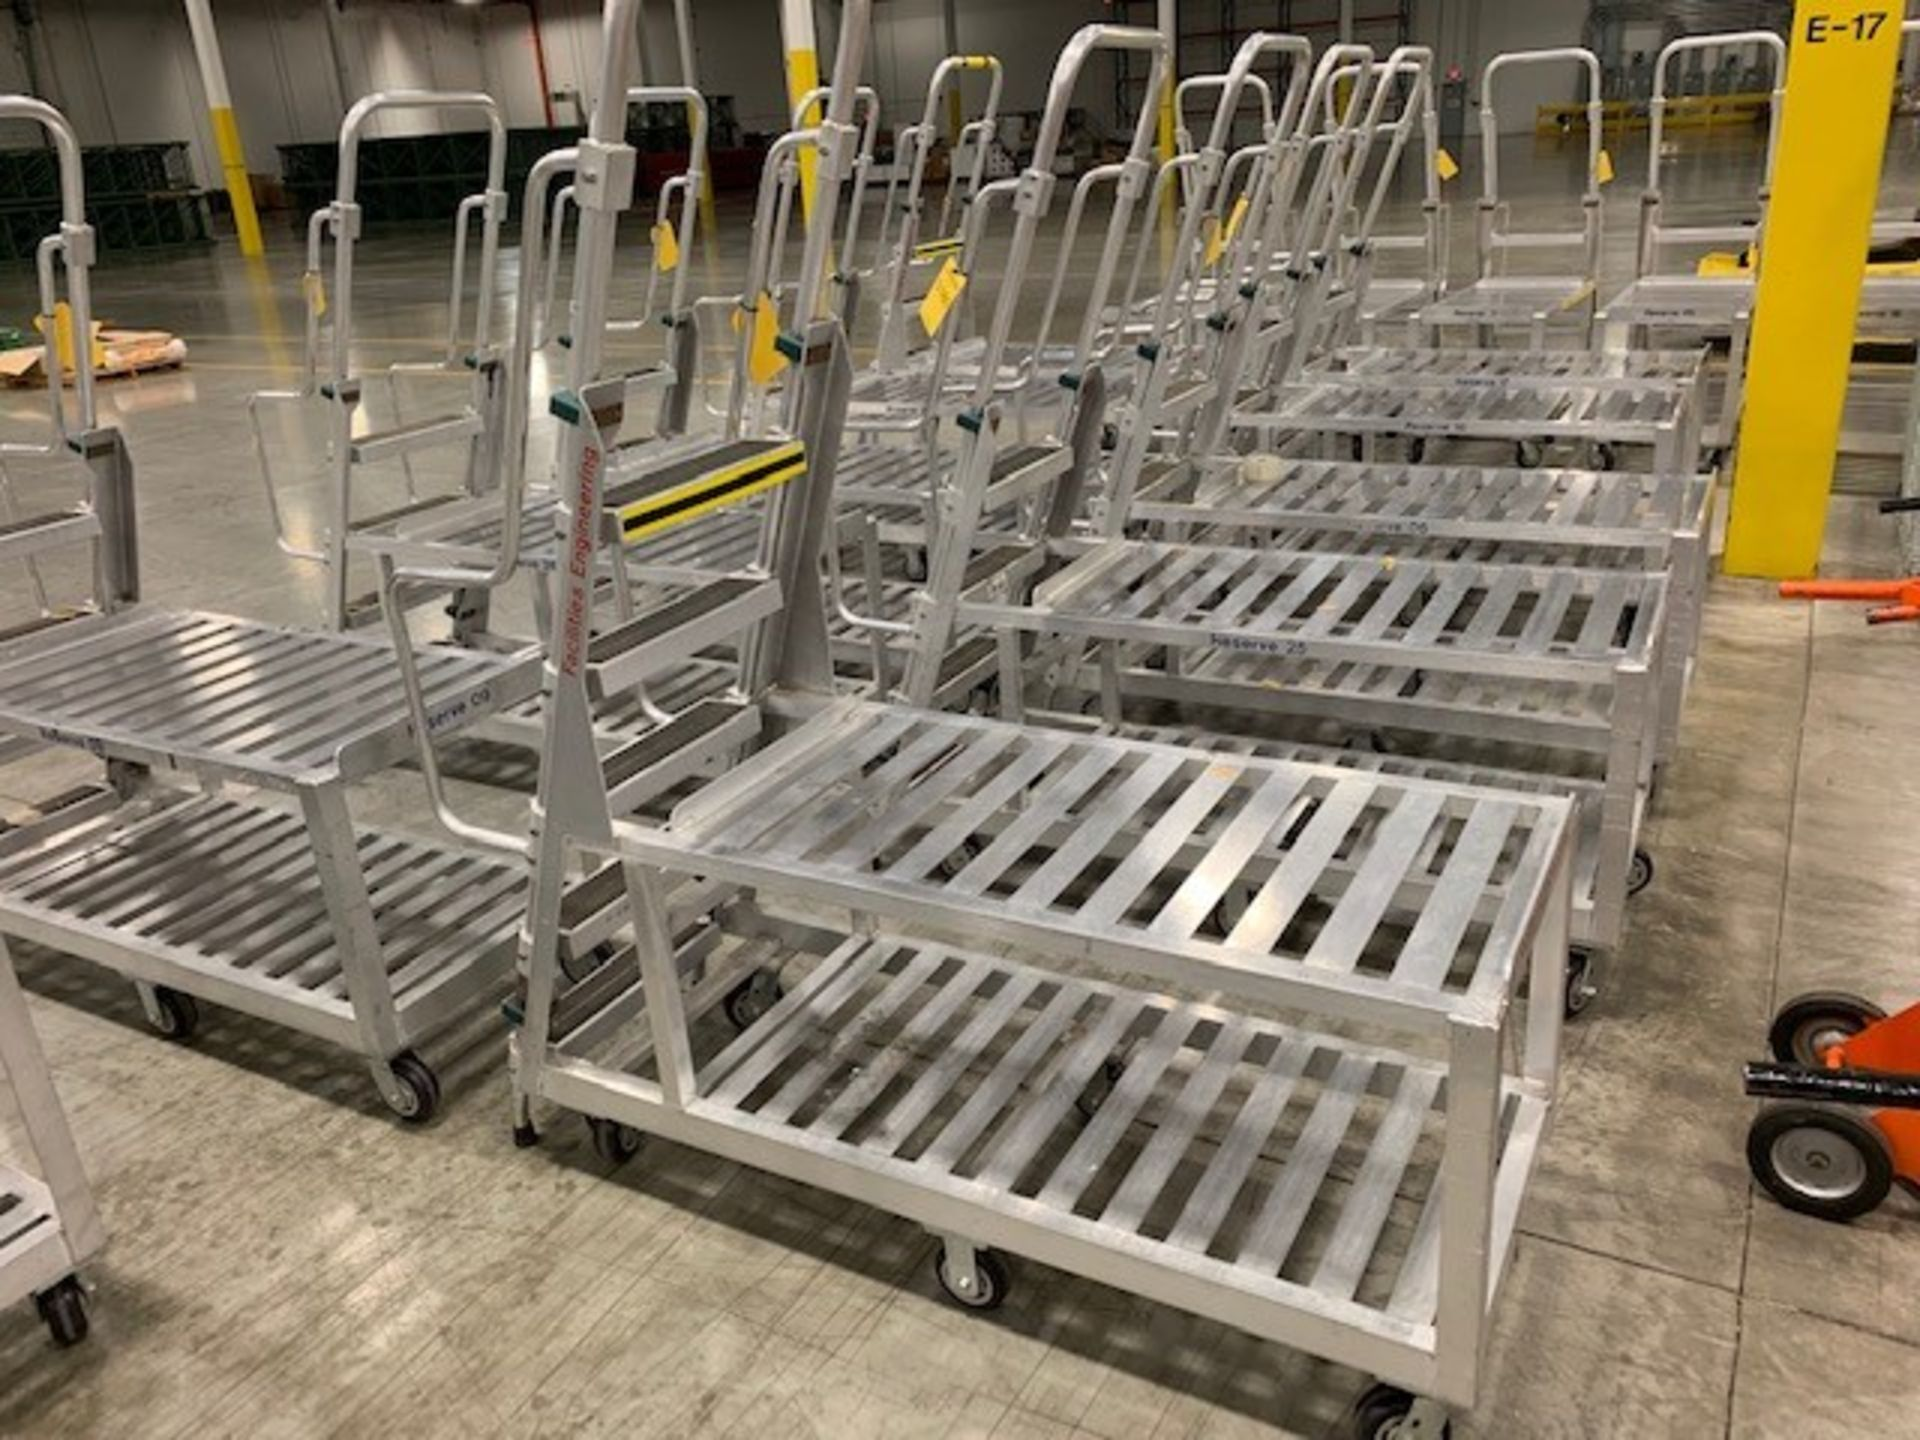 Lot 170 - ALUMINUM PICKING CART WITH LADDER